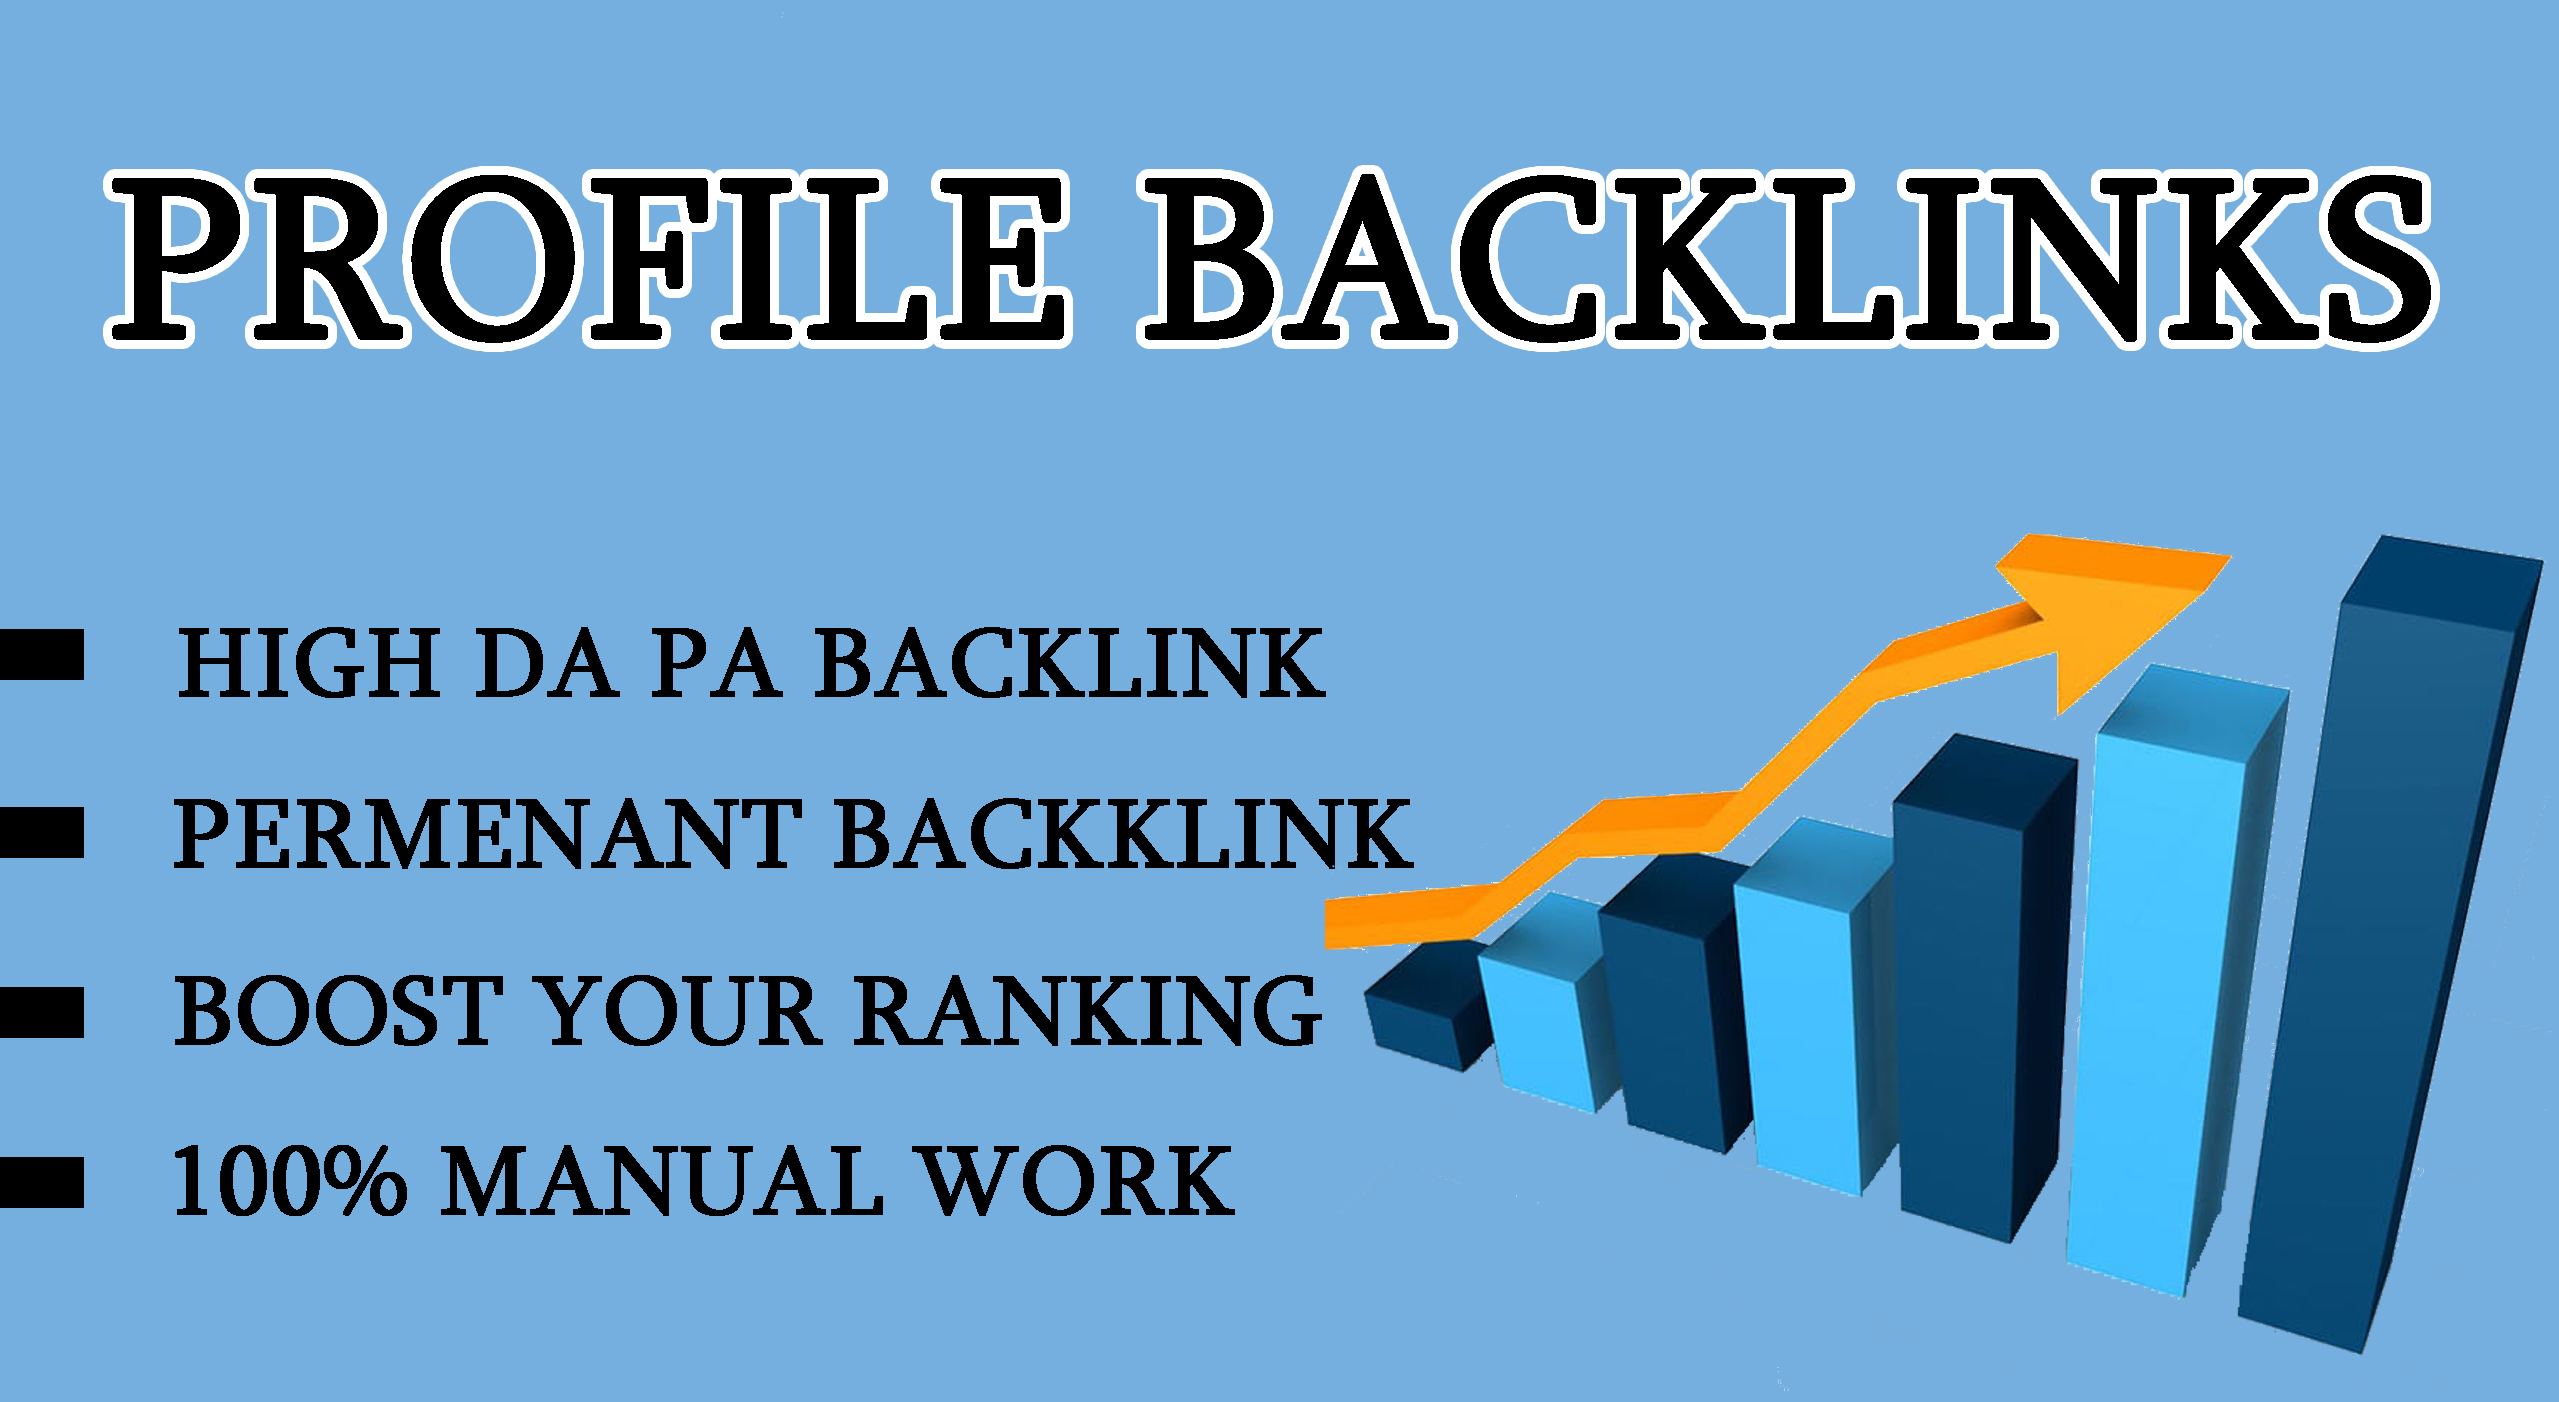 I will provide 30 profile Backlinks on High DA PA